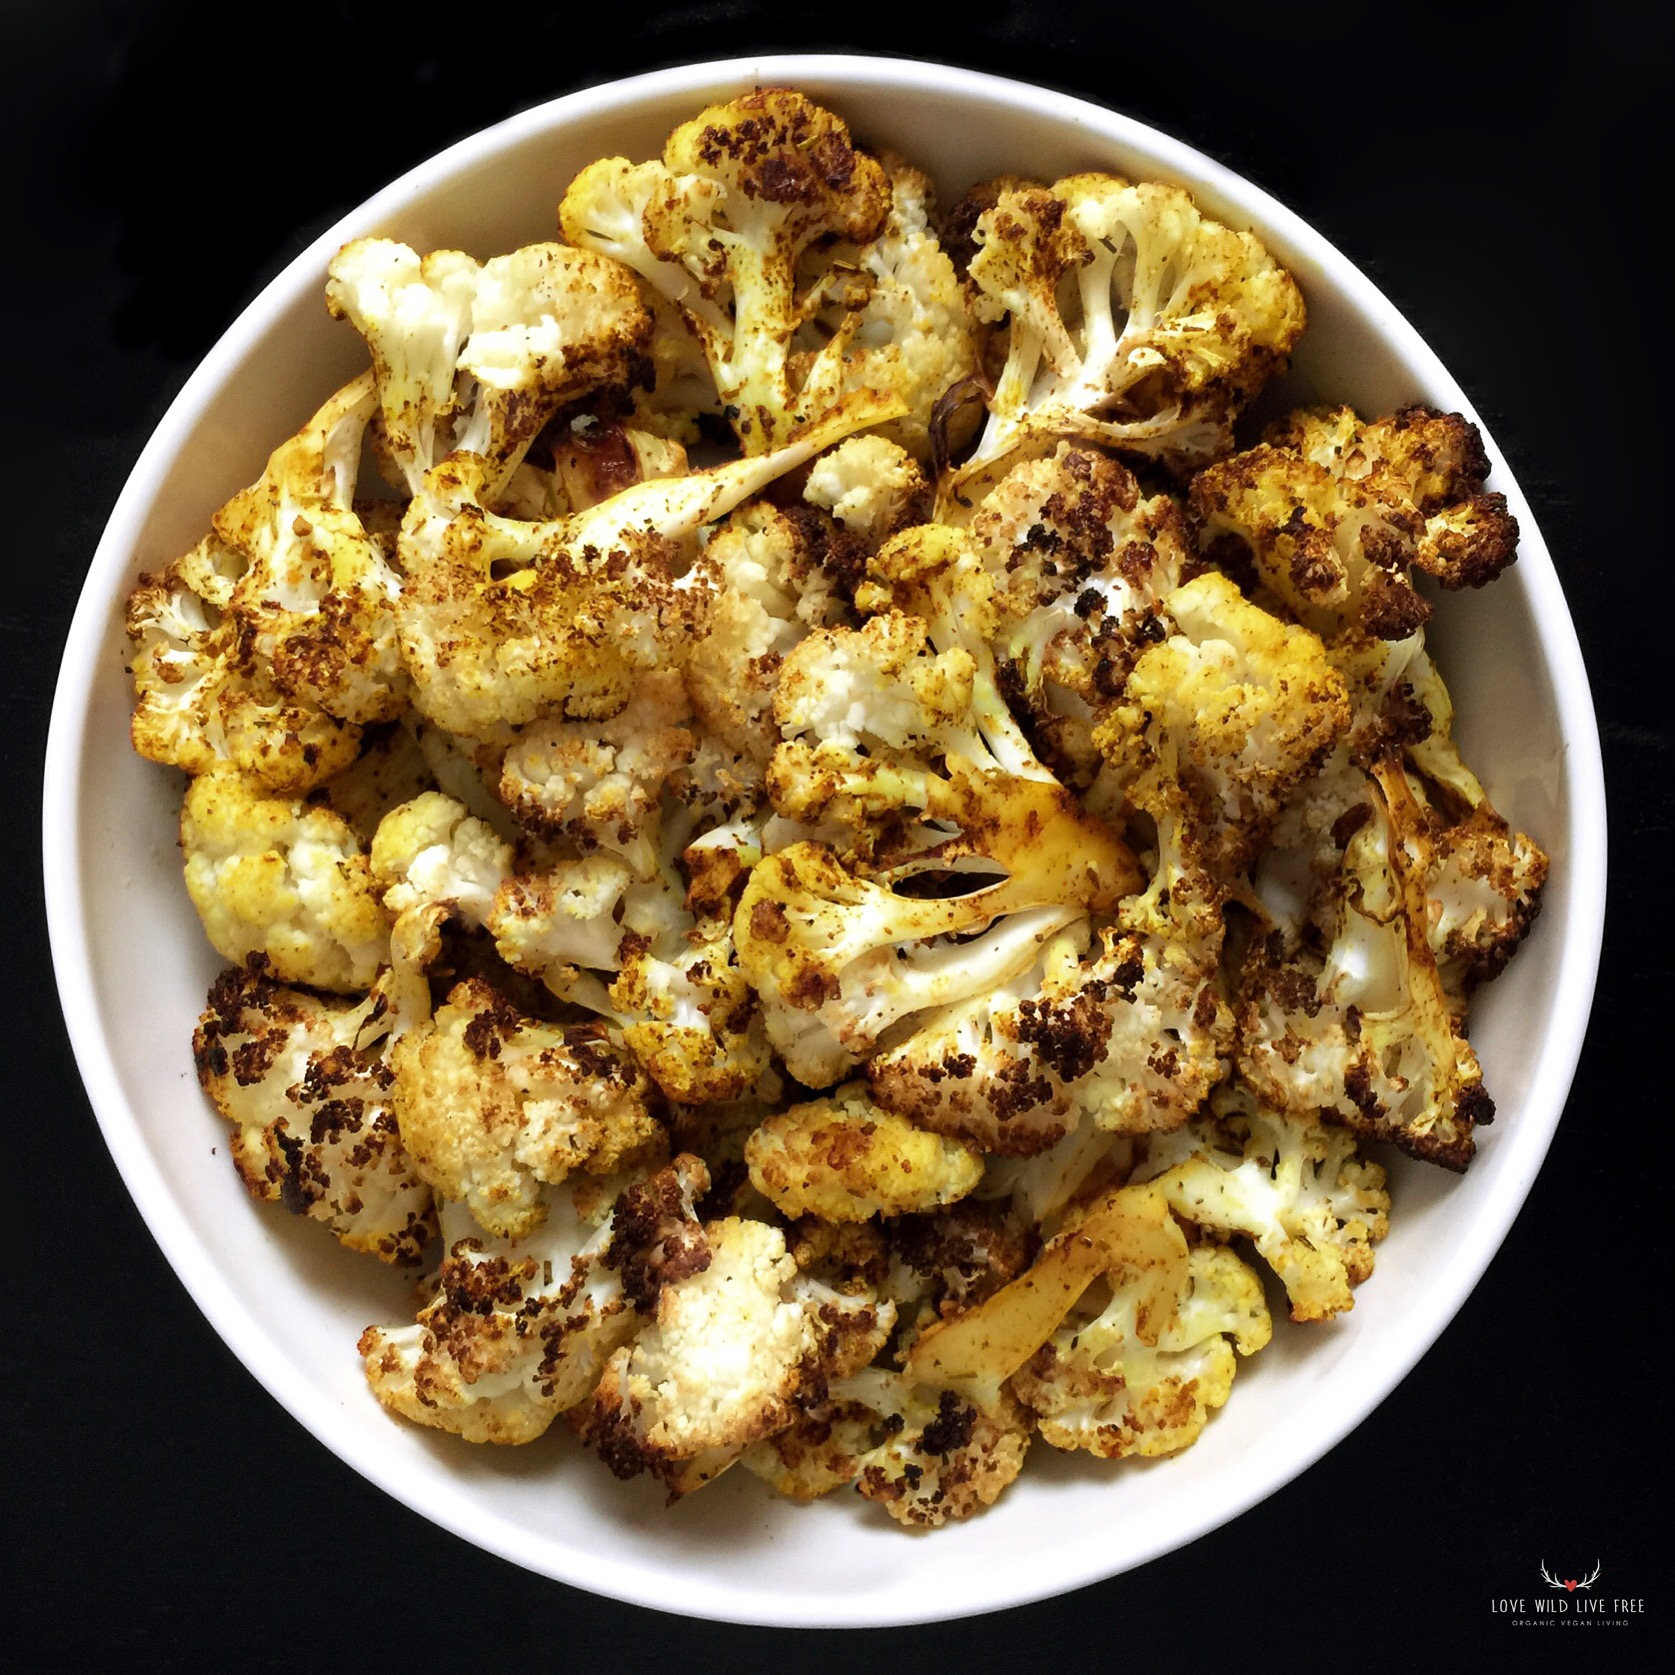 Roast cauliflower is one of the simplest dishes to prepare and is incredibly versatile in terms of flavourings options.